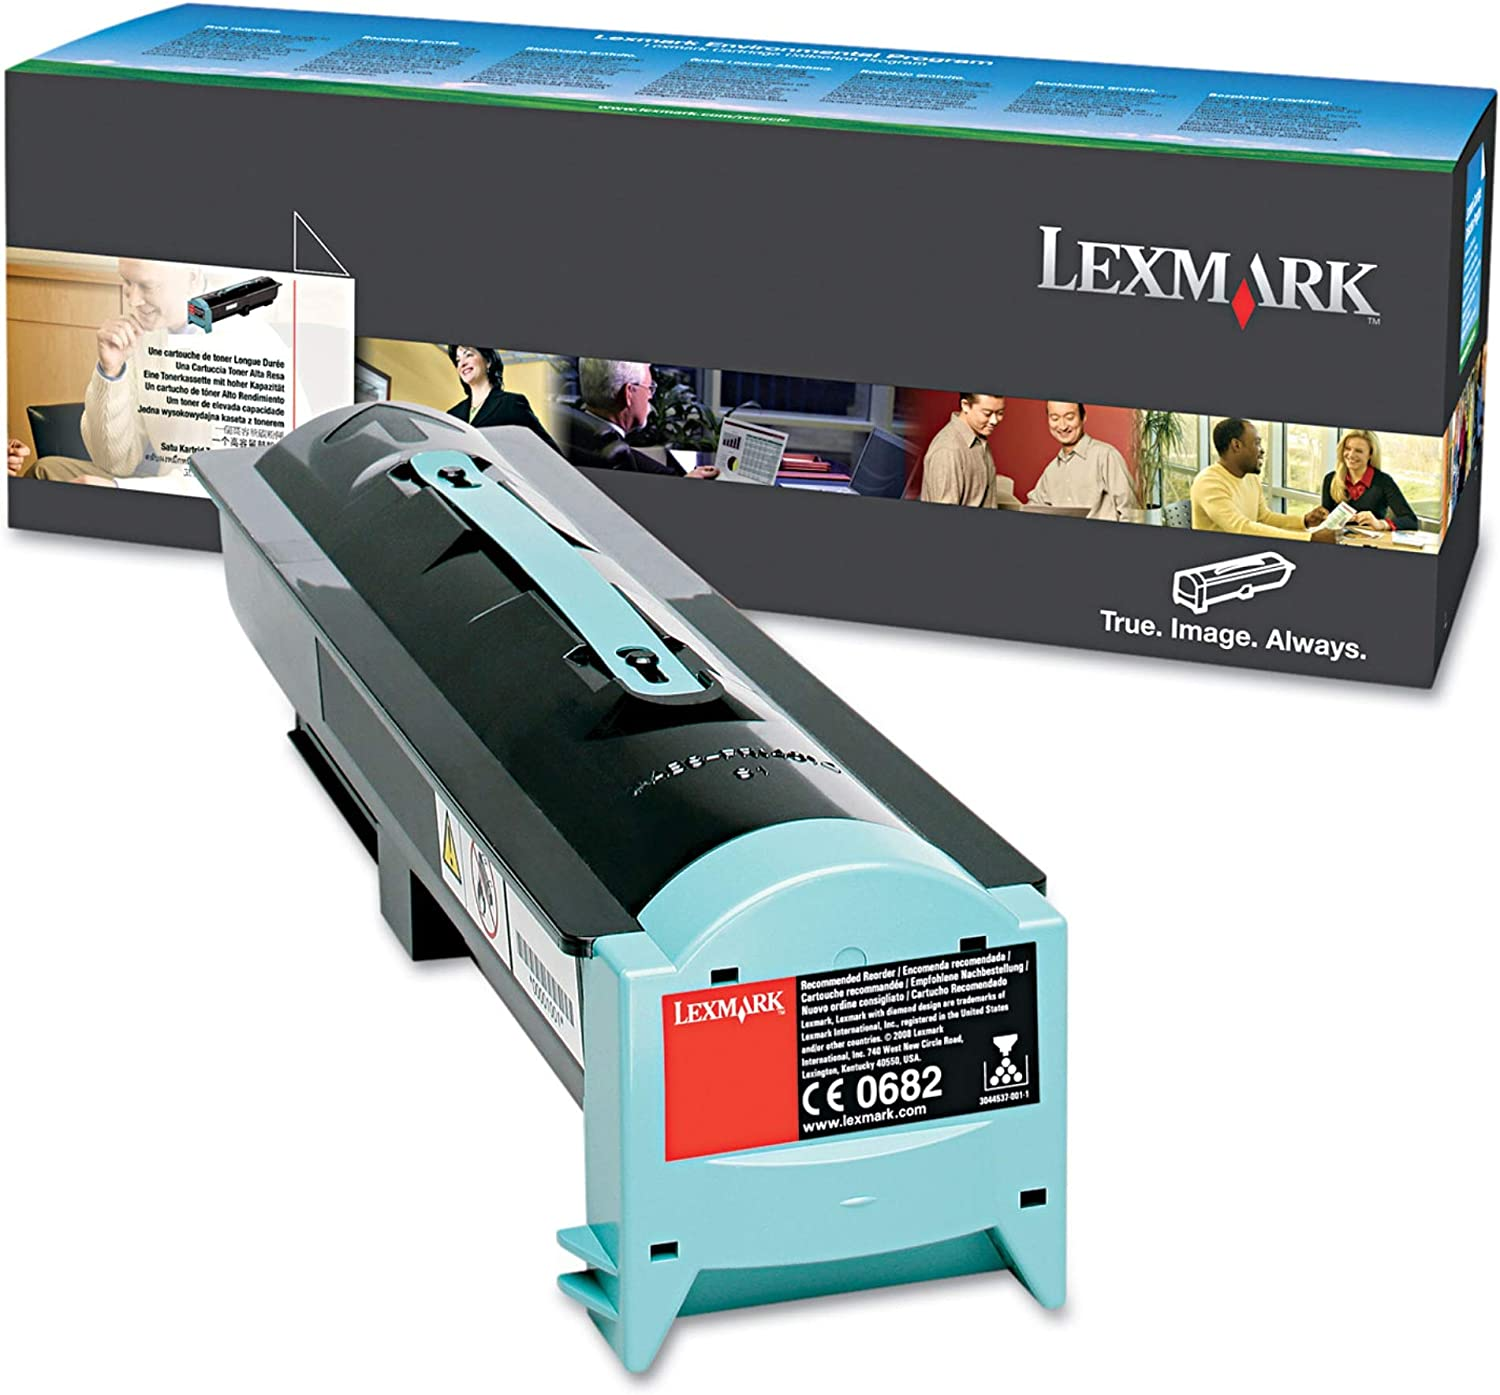 X850H21G Toner, 30000 Page-Yield, Black by LEXMARK (Catalog Category: Computer/Supplies & Data Storage / Printer Supplies/Accessories)